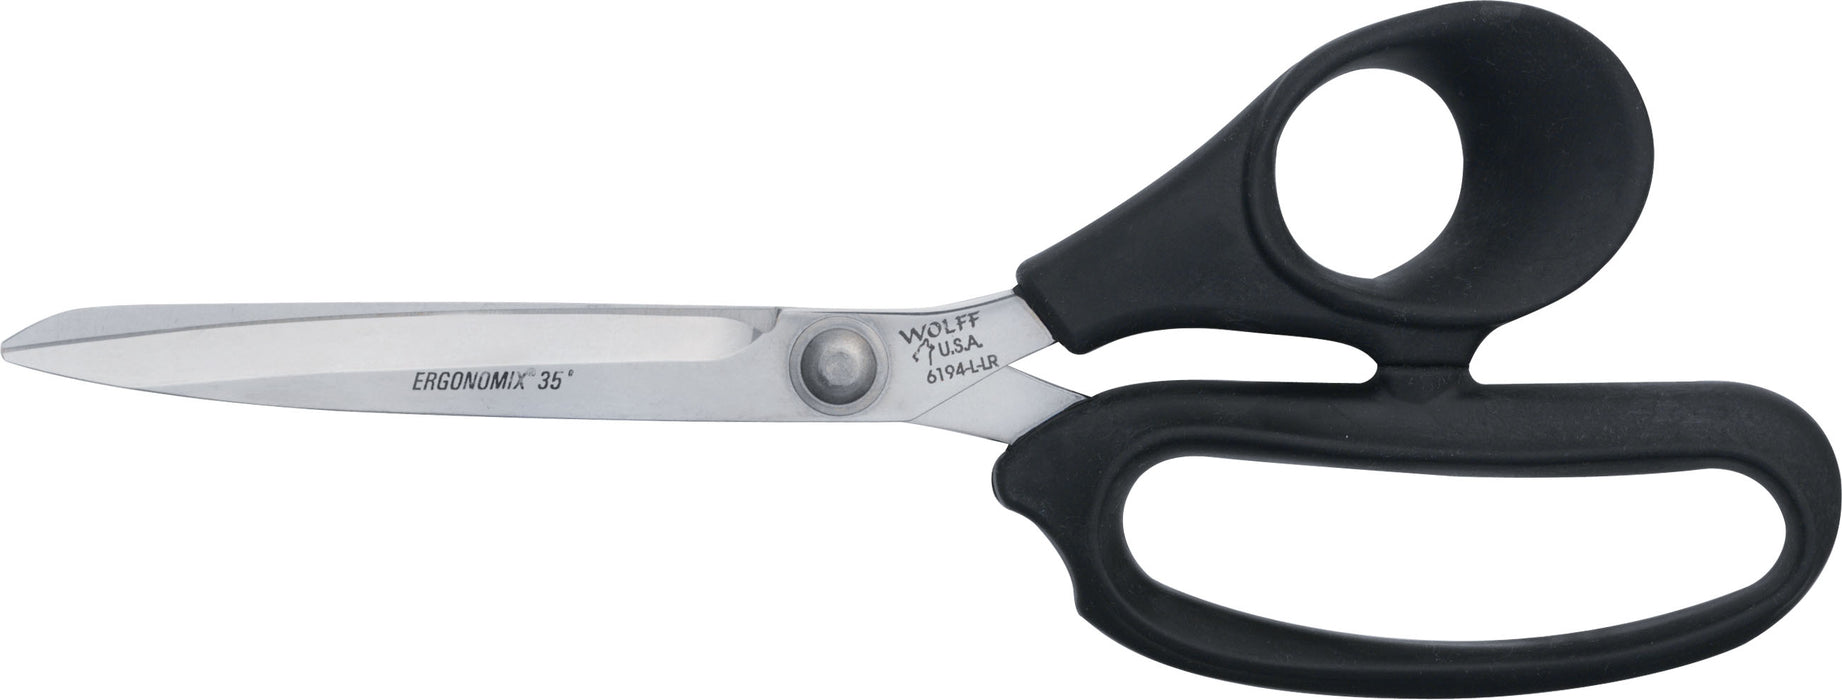 "Wolff® 6194-L-LR 9 5/8"" Ergonomix® Poultry Scissors - 6000 Series Stainless Steel Shears"